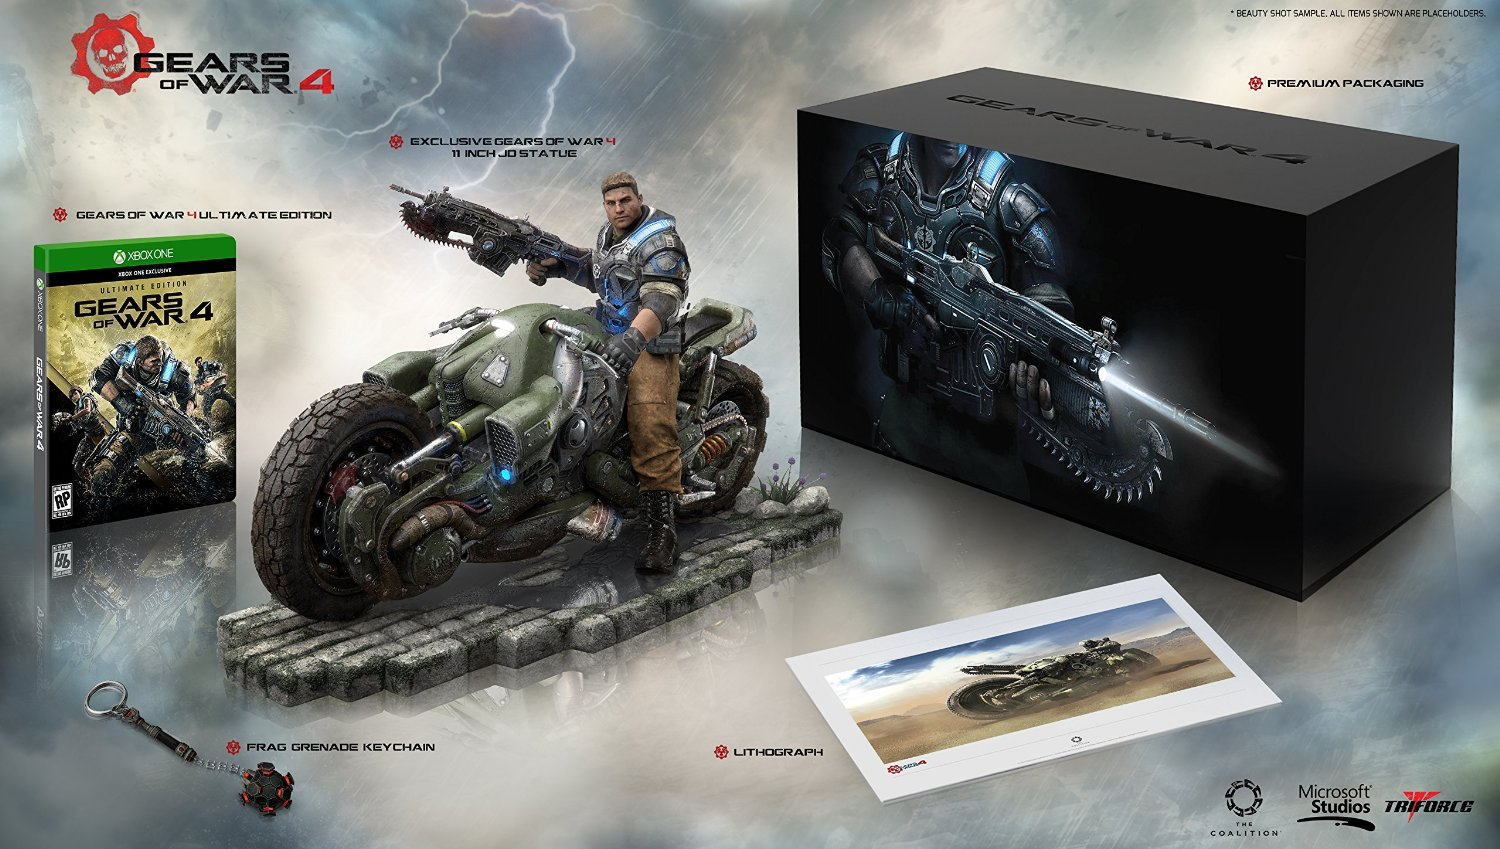 Gears-of-War-4-Collectors-Edition-NAT-Games.de